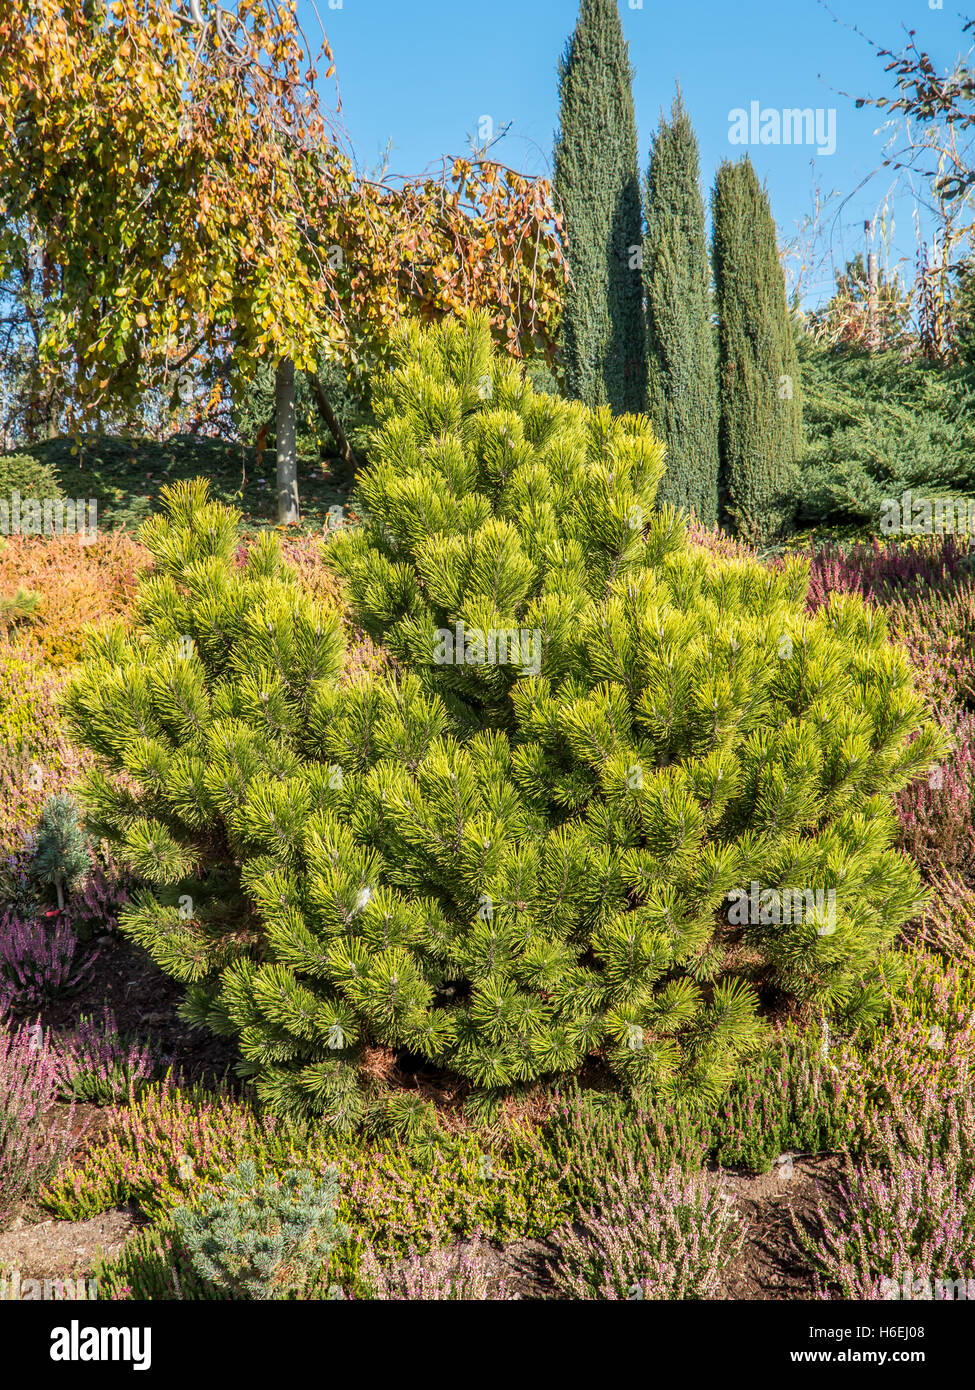 Pumilio mountain pine: planting and care, features of growing and breeding 5